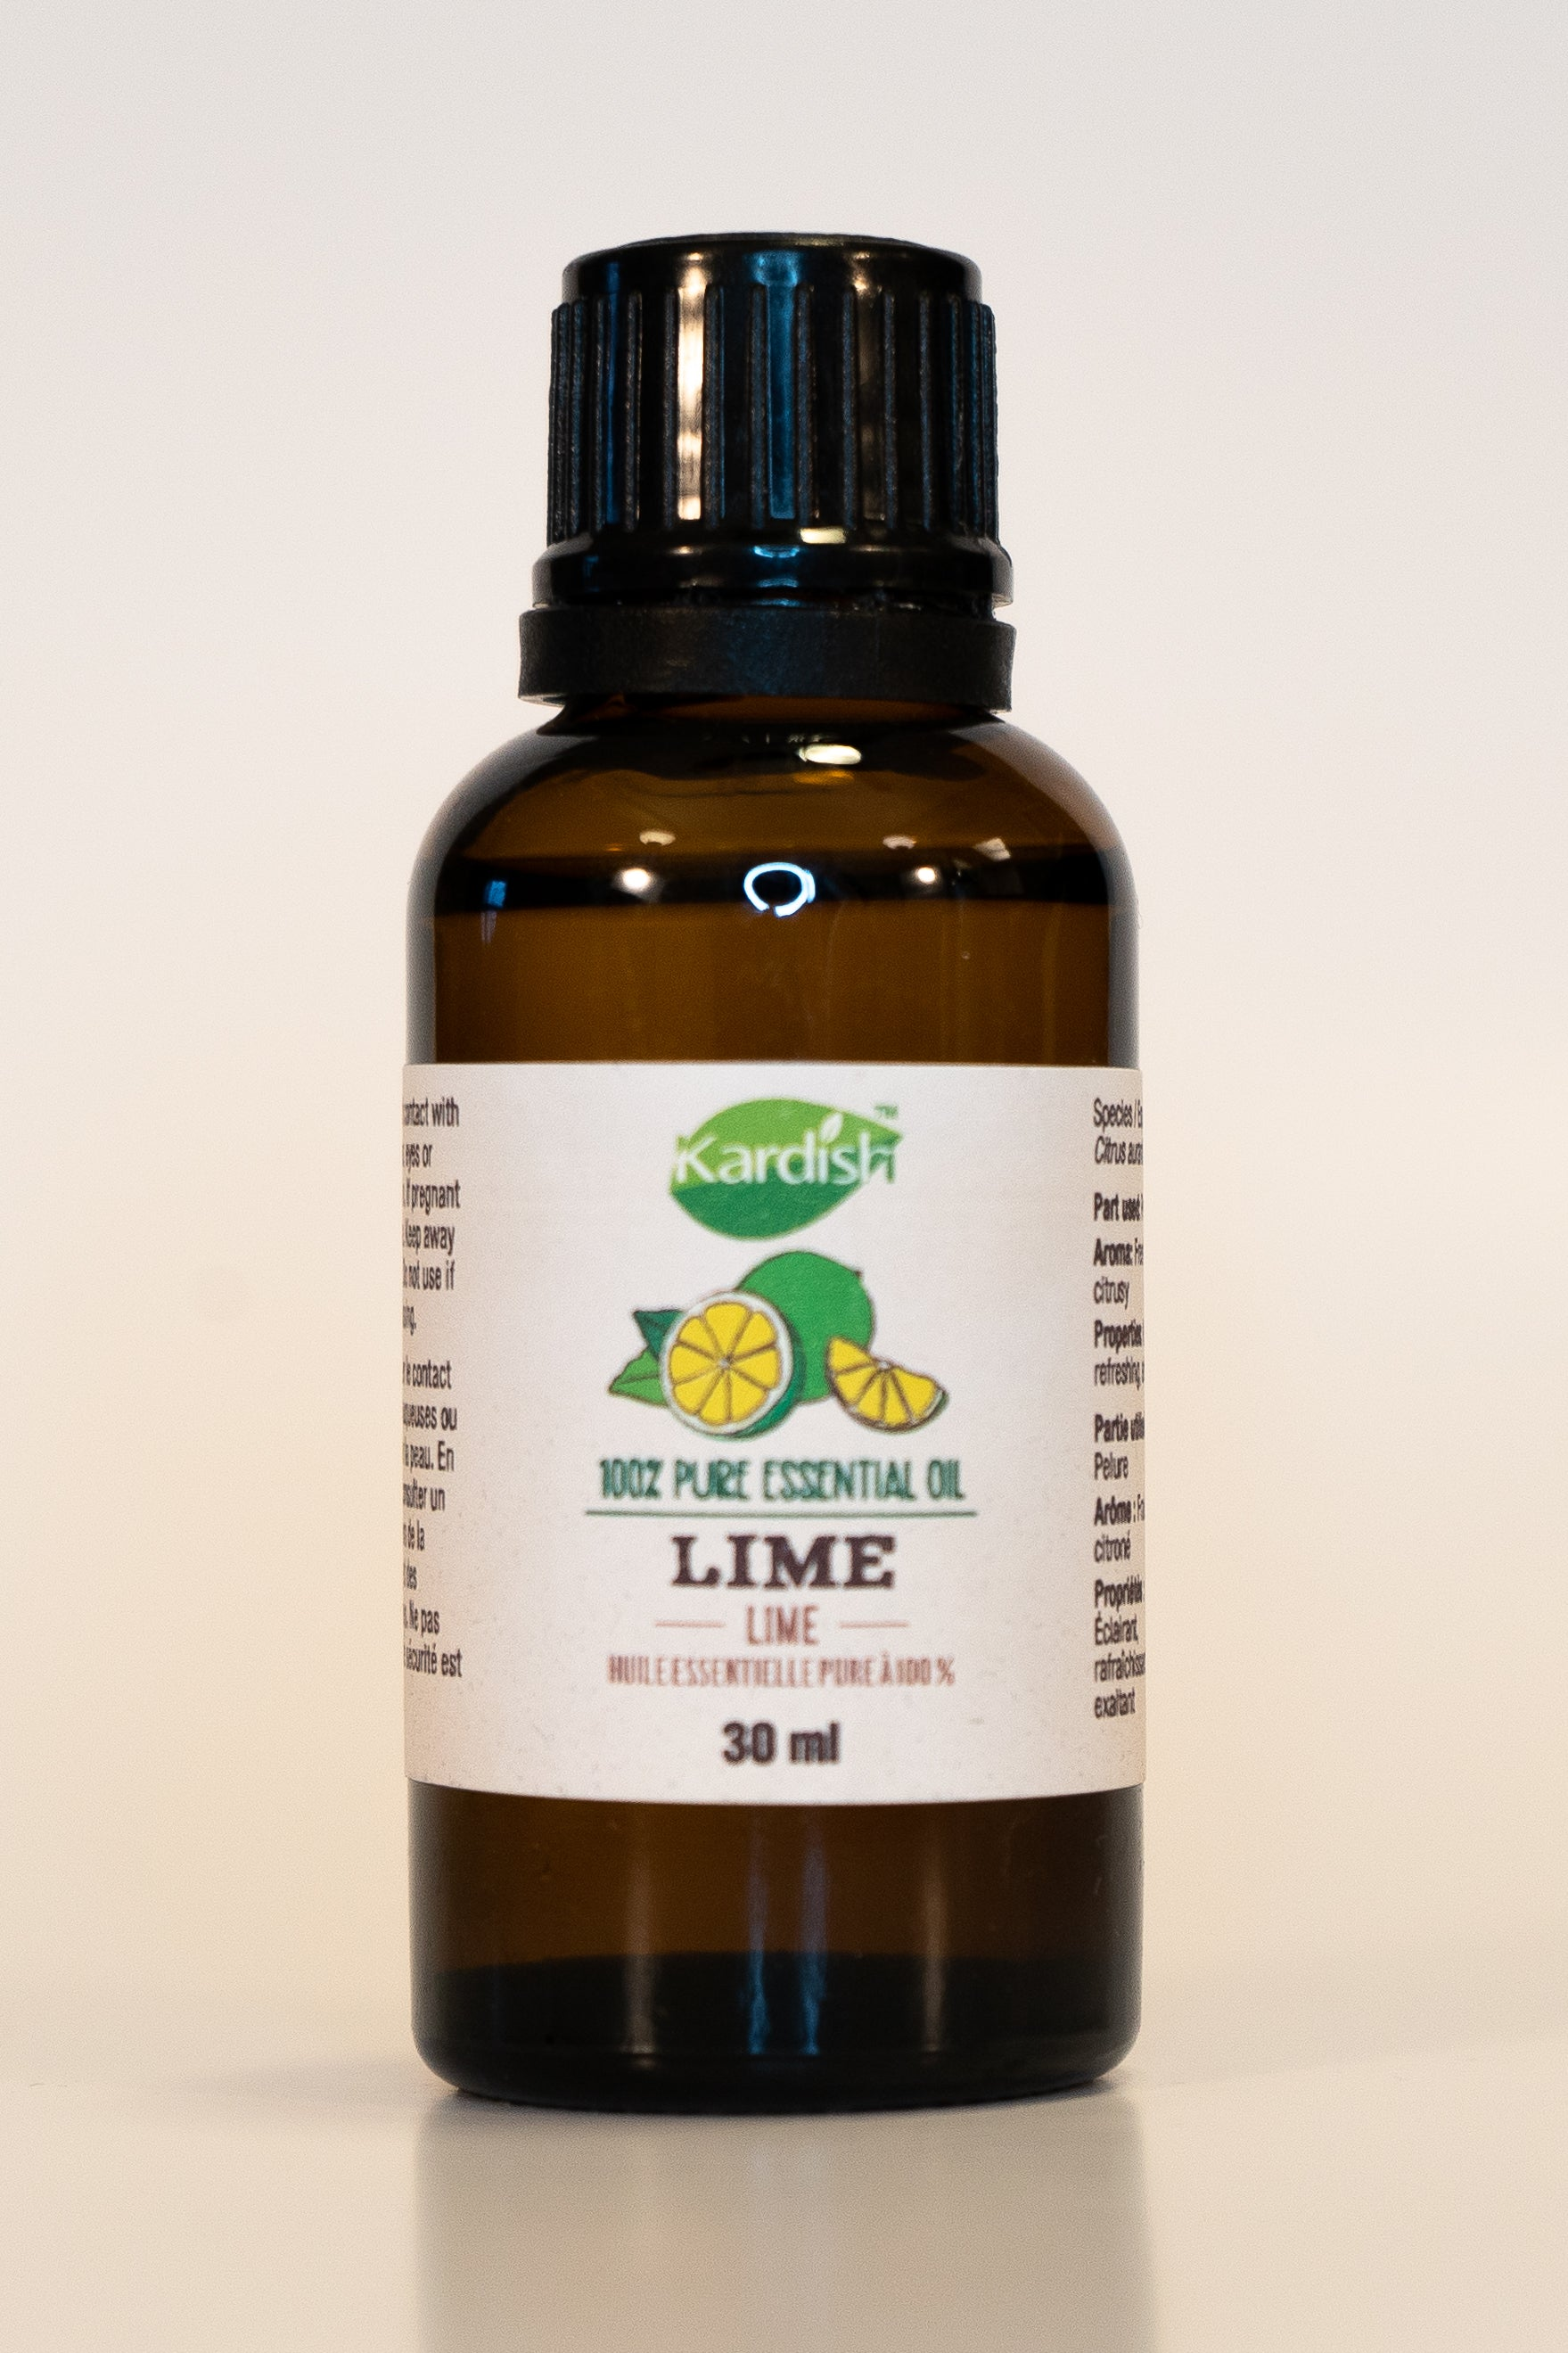 Kardish Essential Oil of Lime